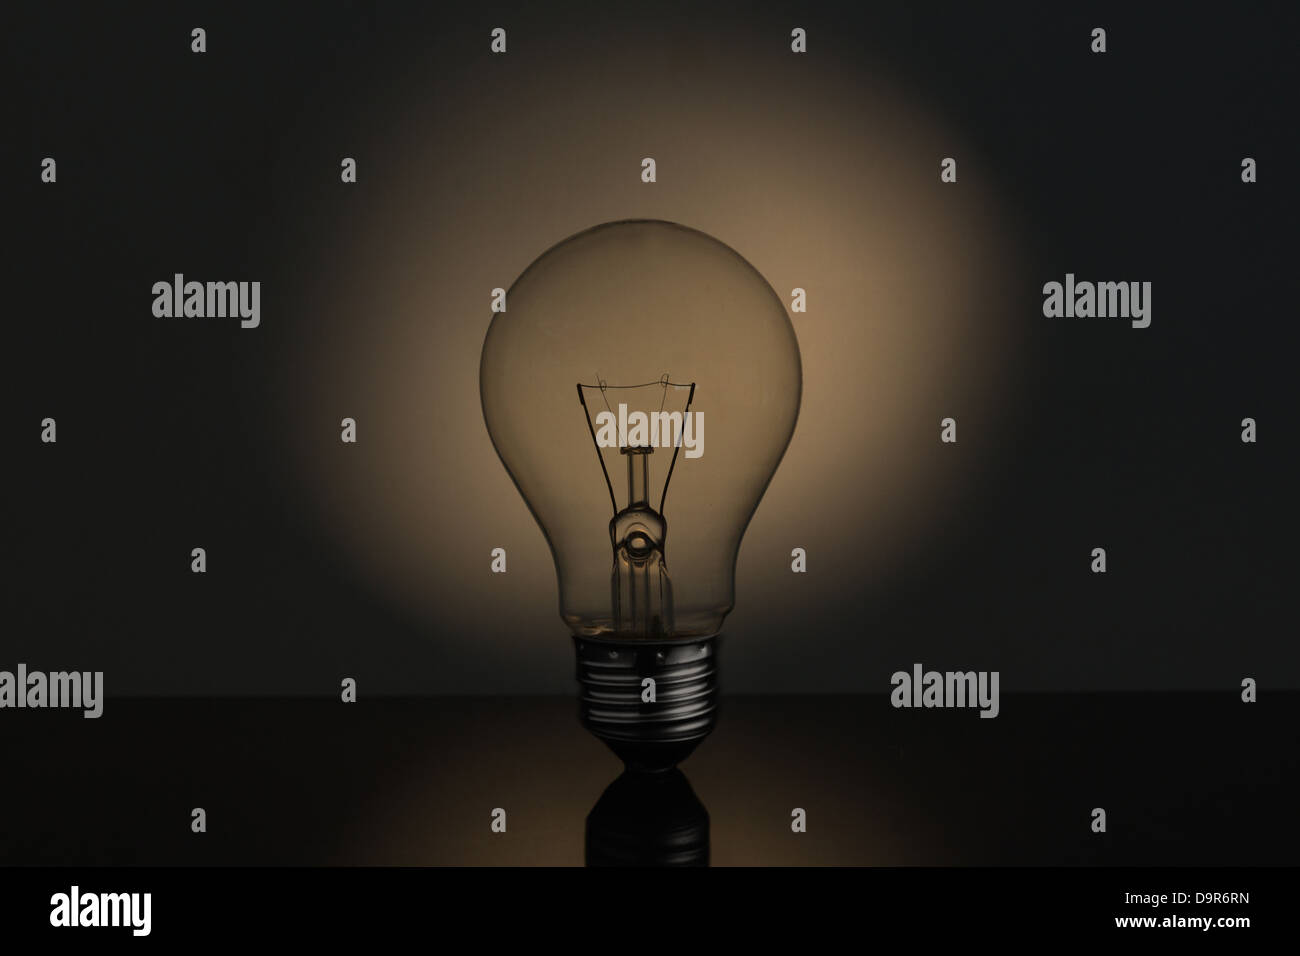 Big light bulb standing in sepia tones Stock Photo